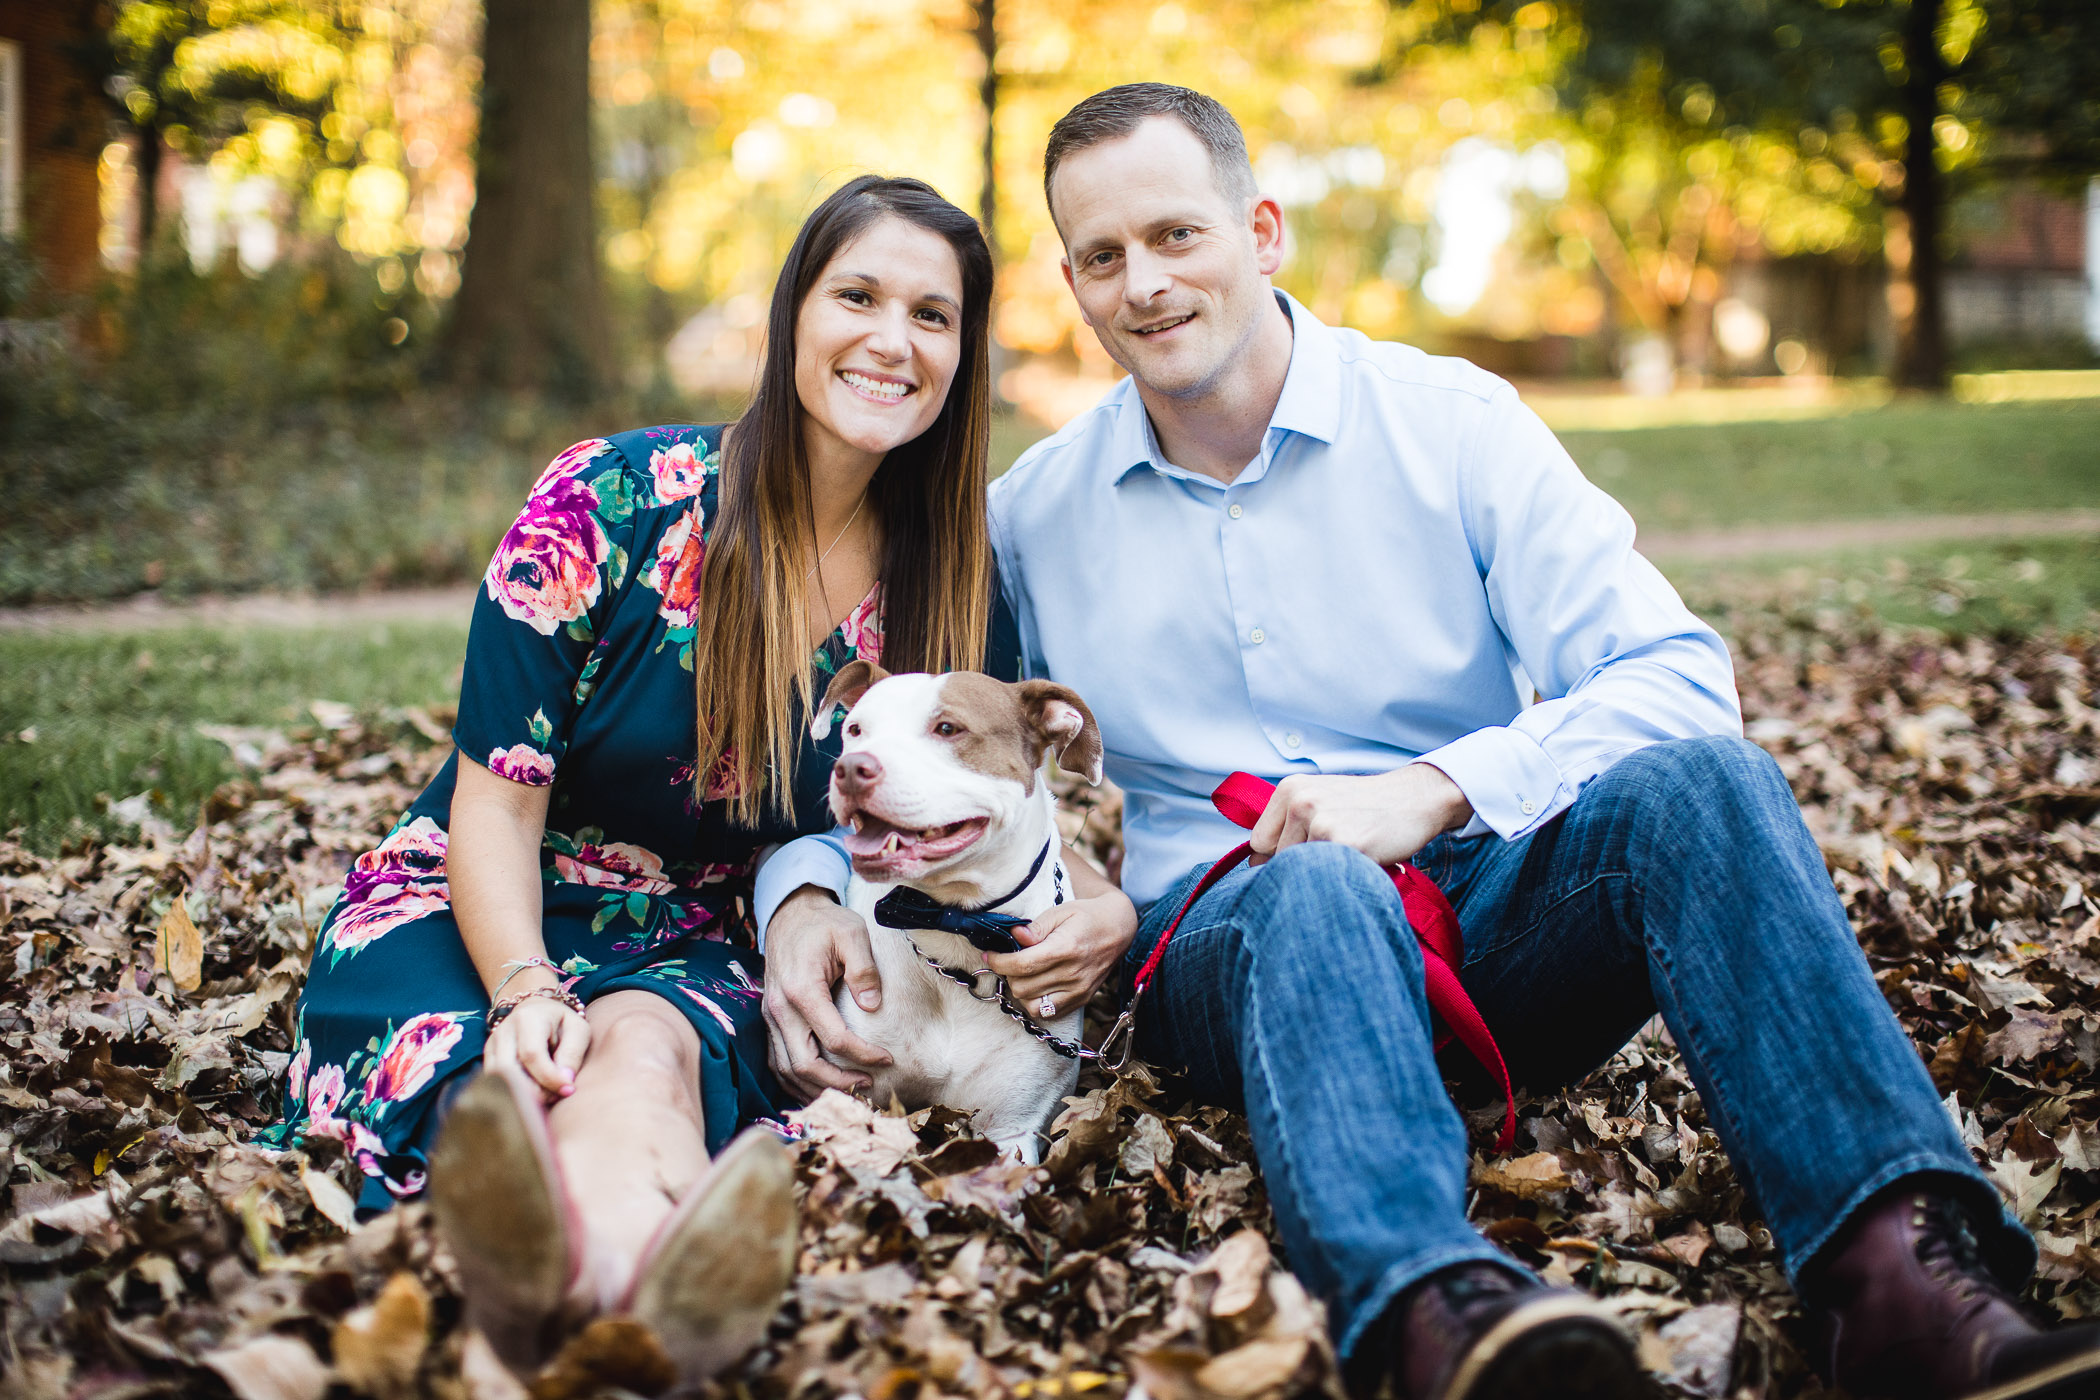 Hand & Hand & Paw Engagement Session on the Streets of Annapolis 08